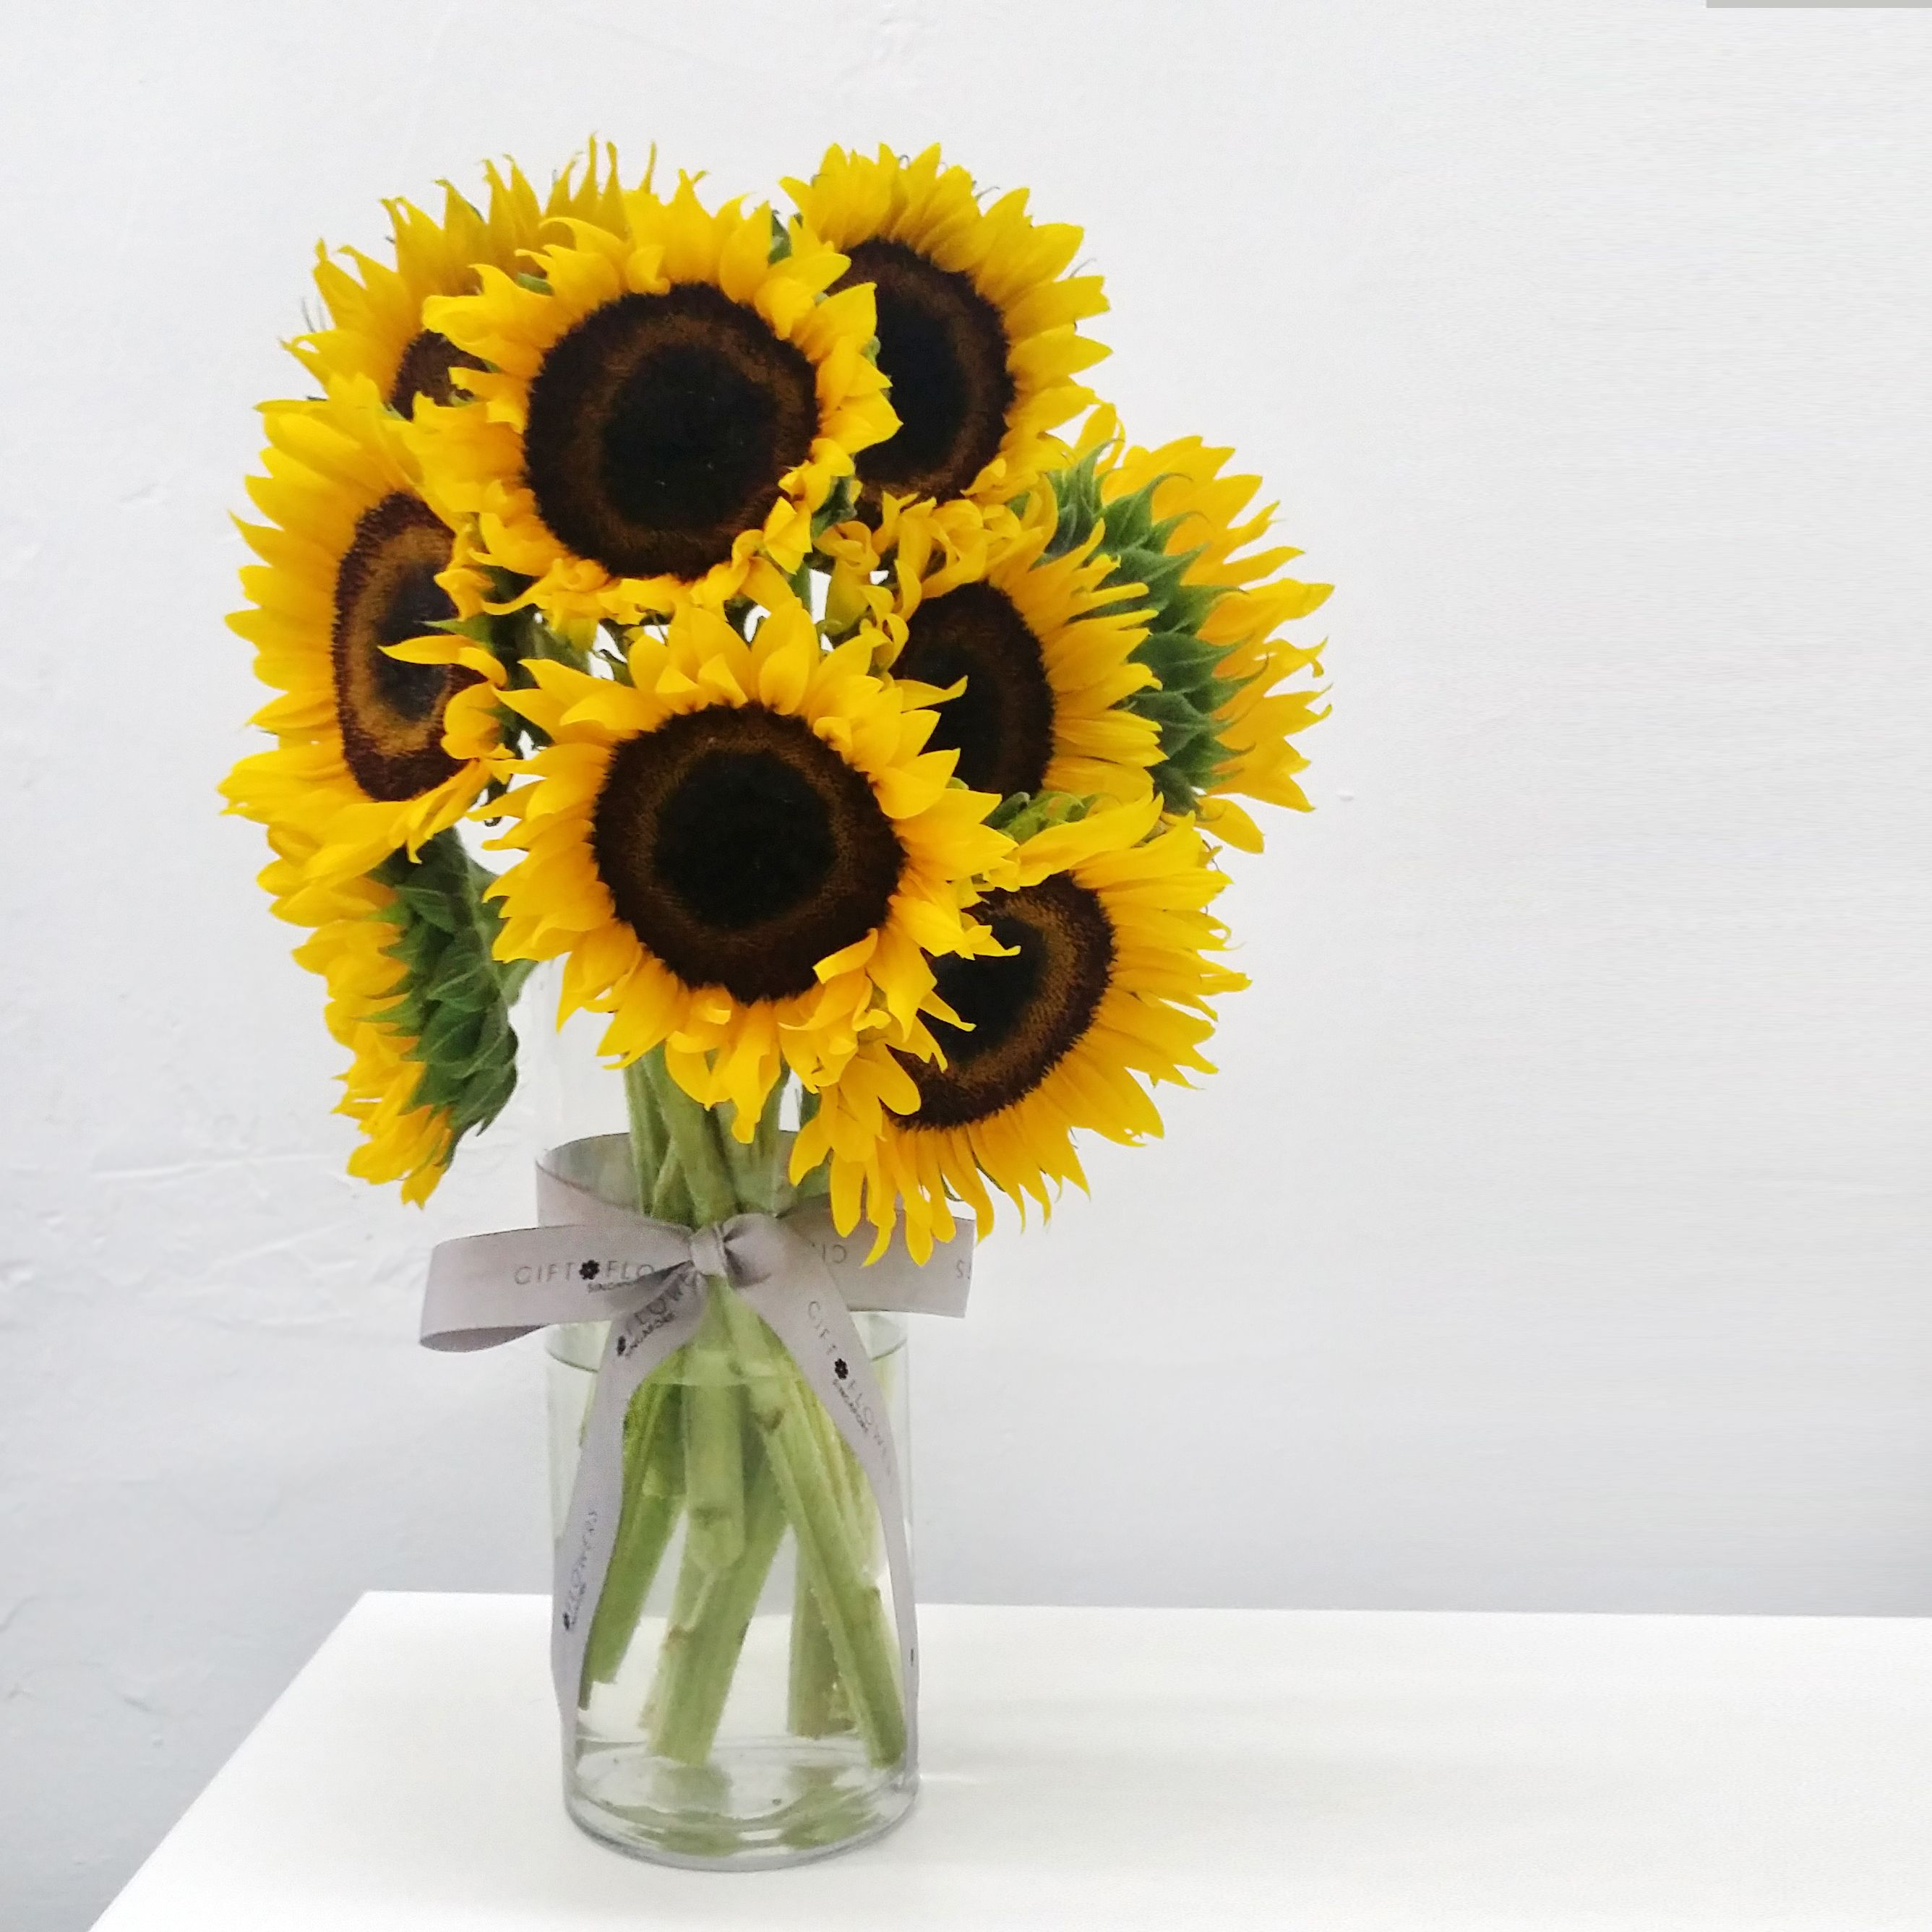 Good Afternoon Featuring Our Sunflowers In A Vase A Gift That Can Be Used To Convey Meanings Of Happiness Love And S Flower Lover Flower Gift Online Florist